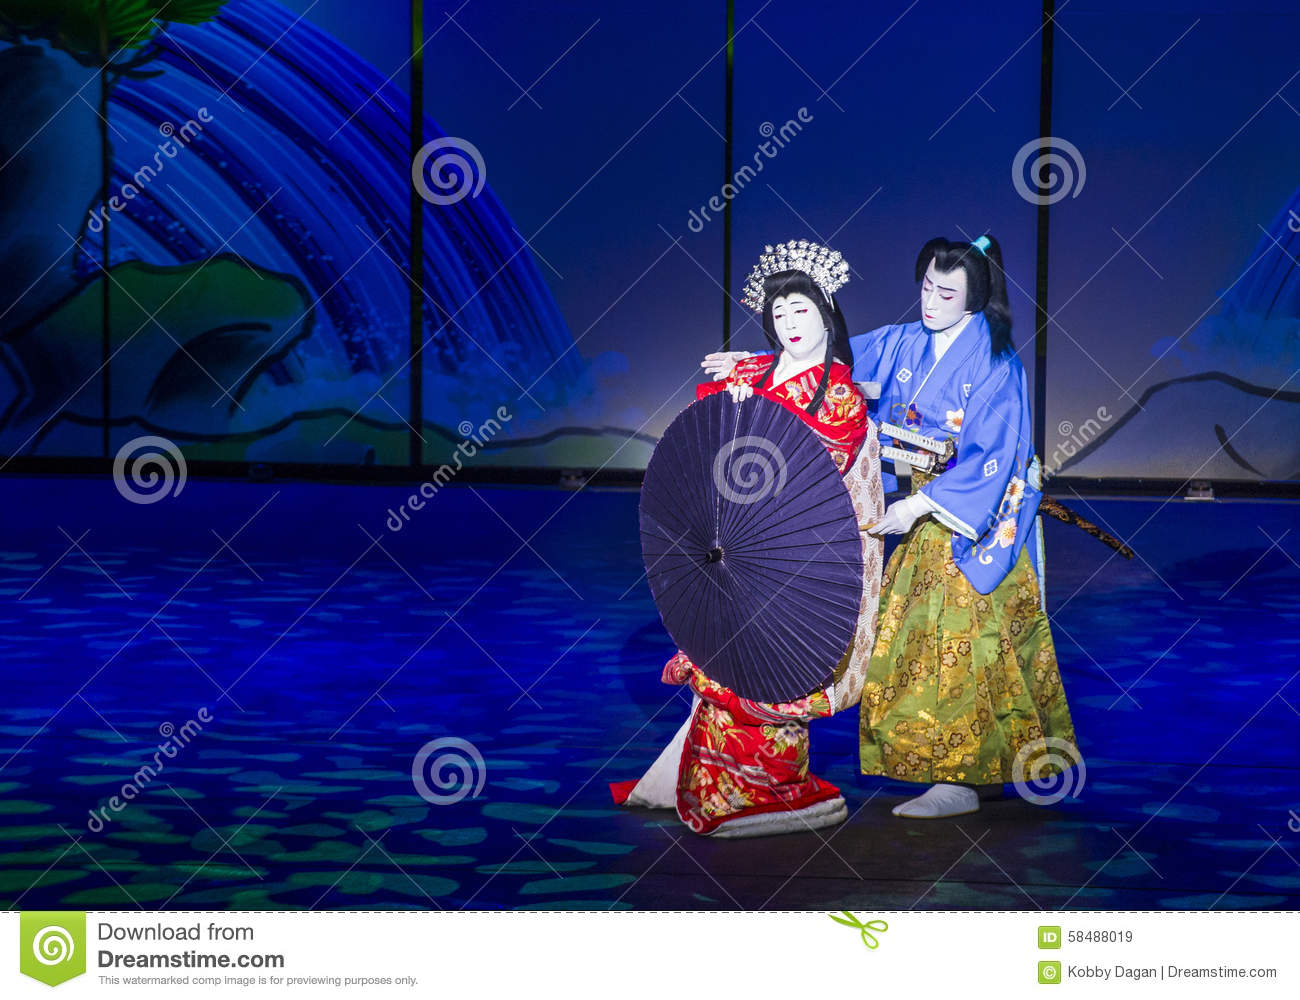 Download Kabuki Spectacle At The Fountains Of Bellagio Editorial Stock Image - Image of asia, nippon: 58488019